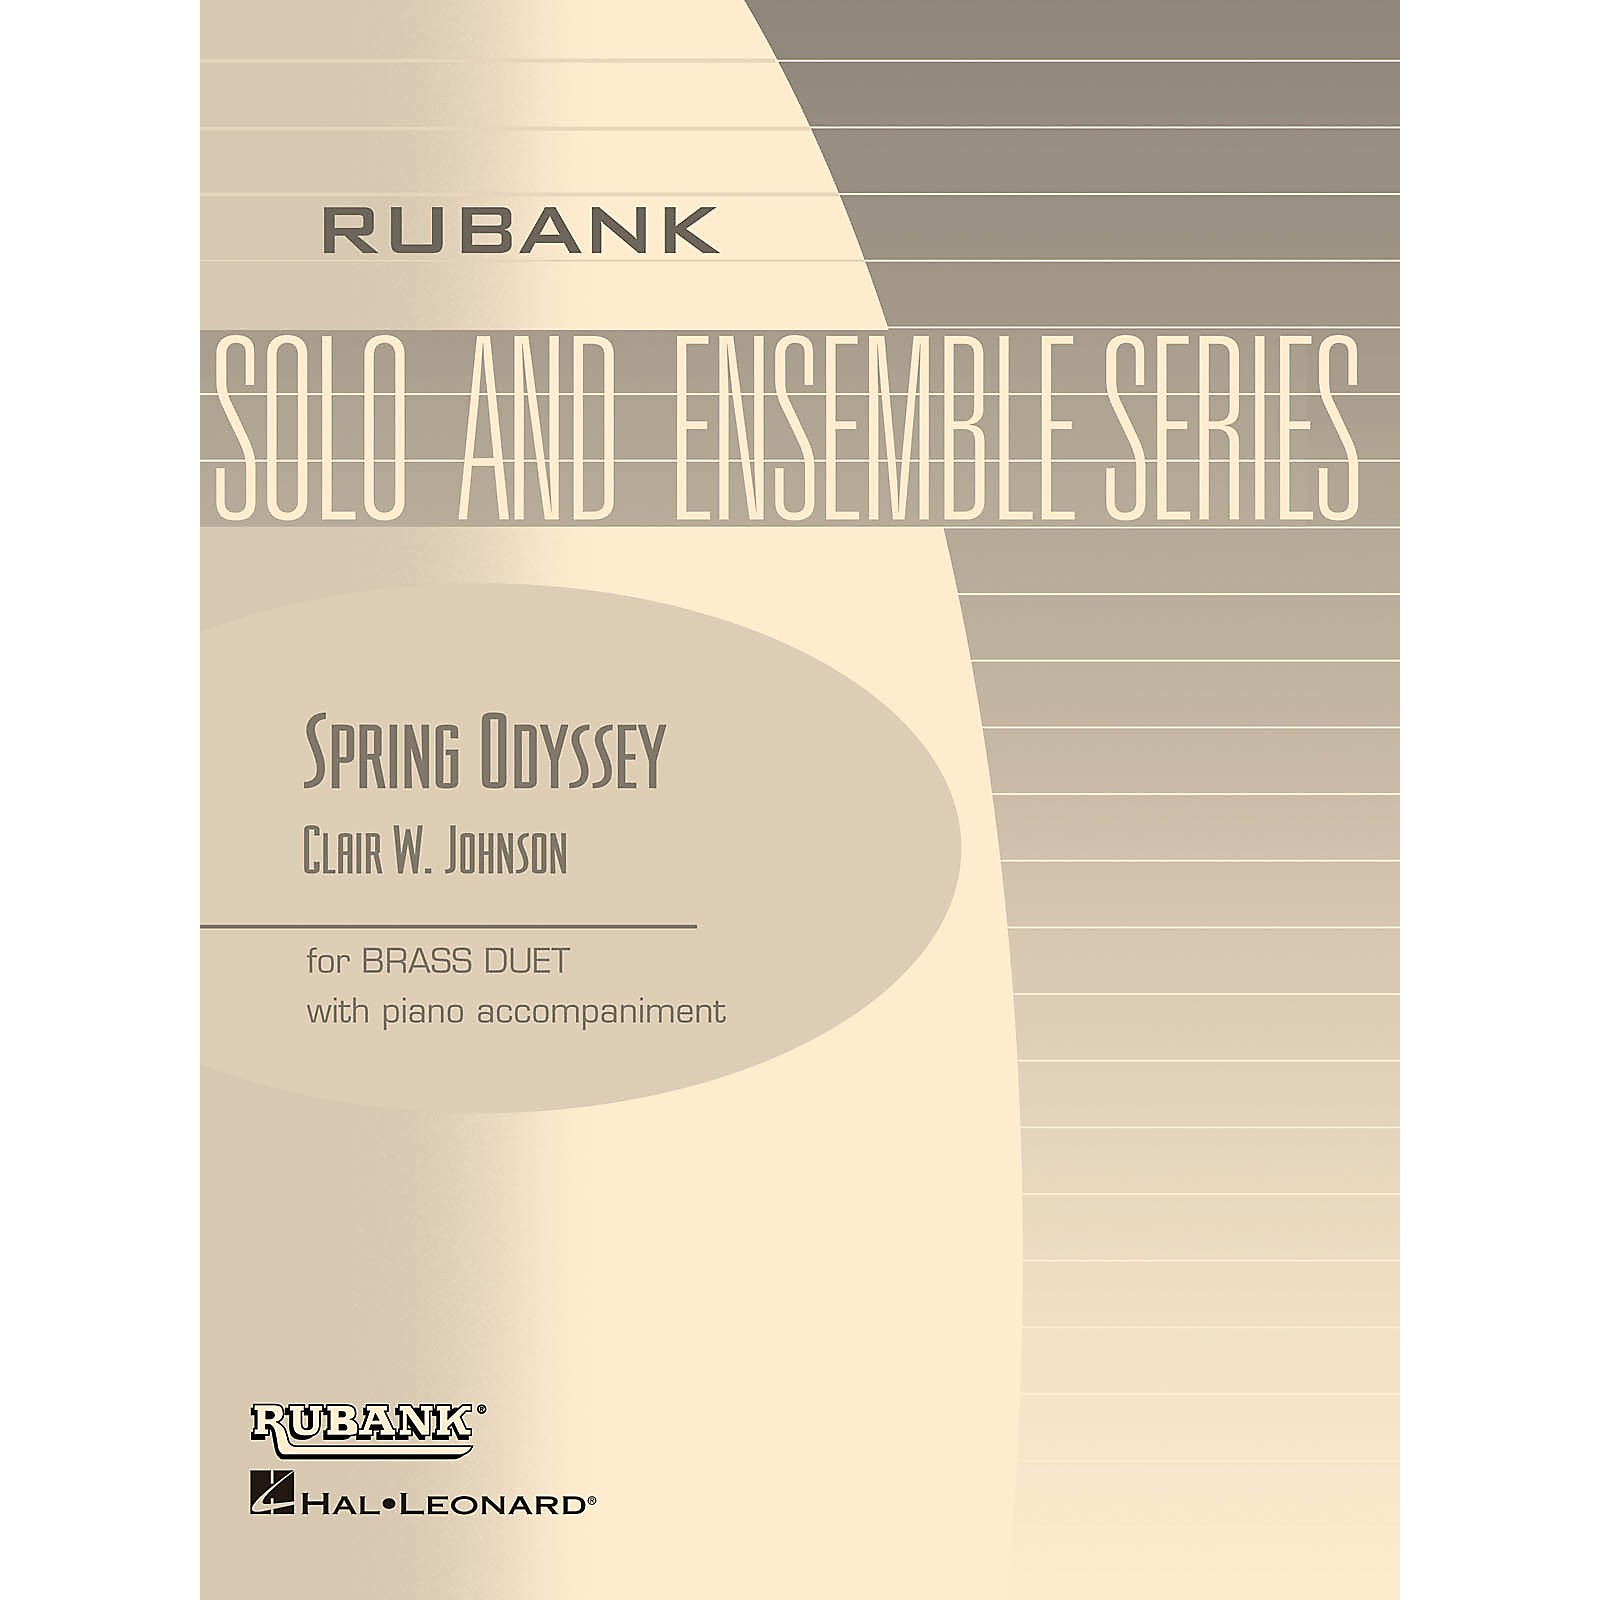 Rubank Publications Spring Odyssey (Brass Duet with Piano - Grade 3) Rubank Solo/Ensemble Sheet Series Book